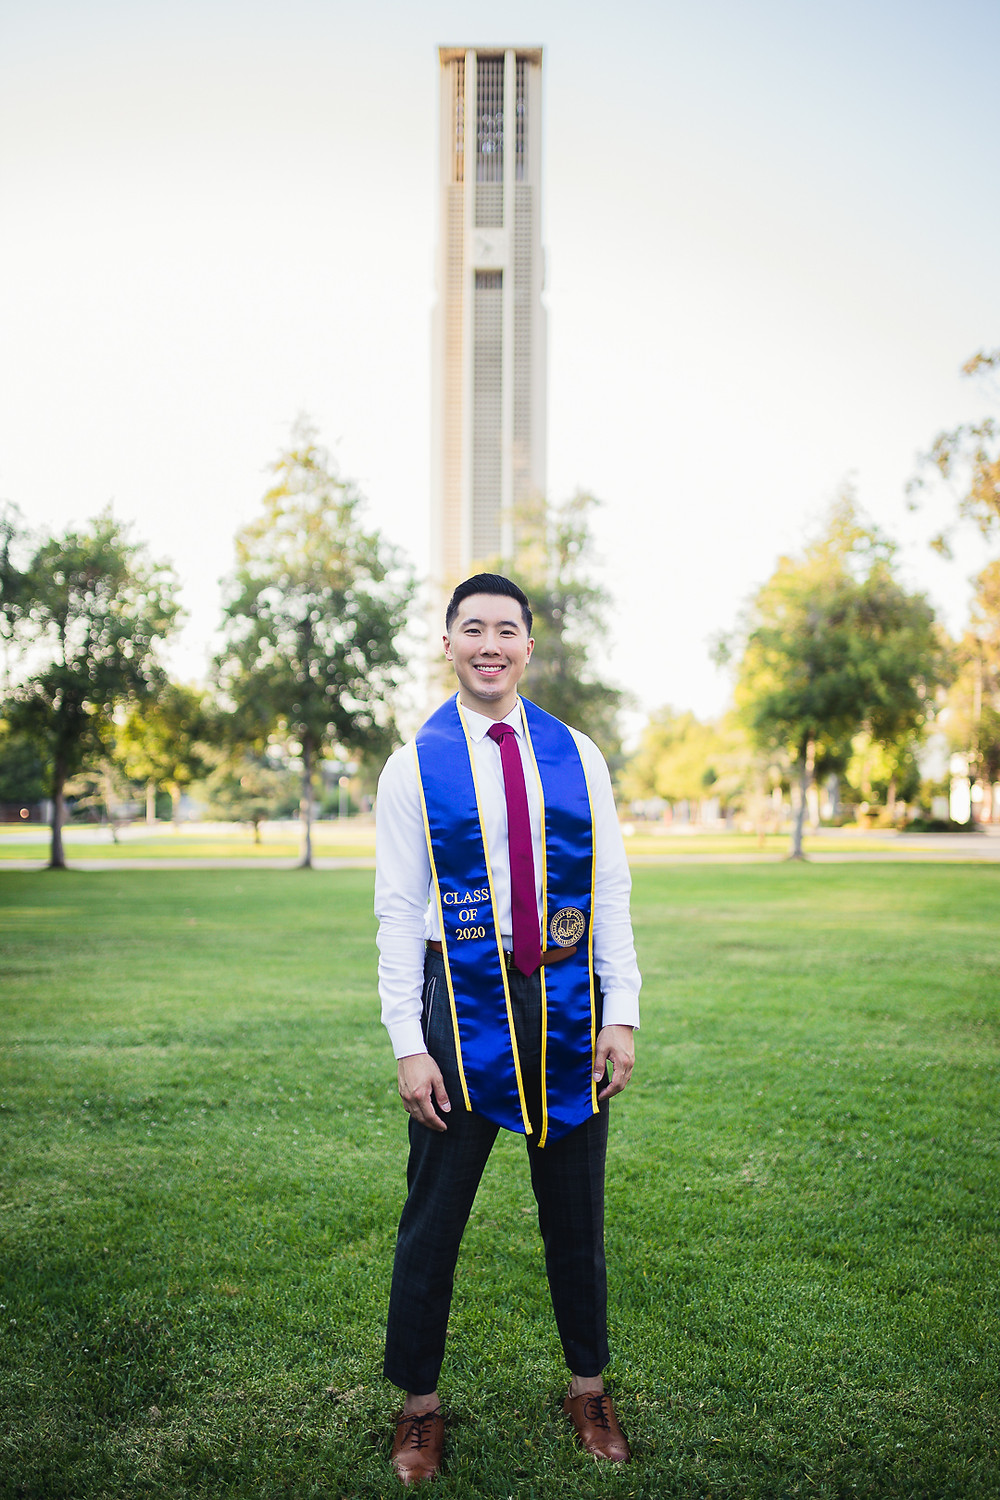 UCR Graduation Photos Bell Tower | Marcus and Cindy 15